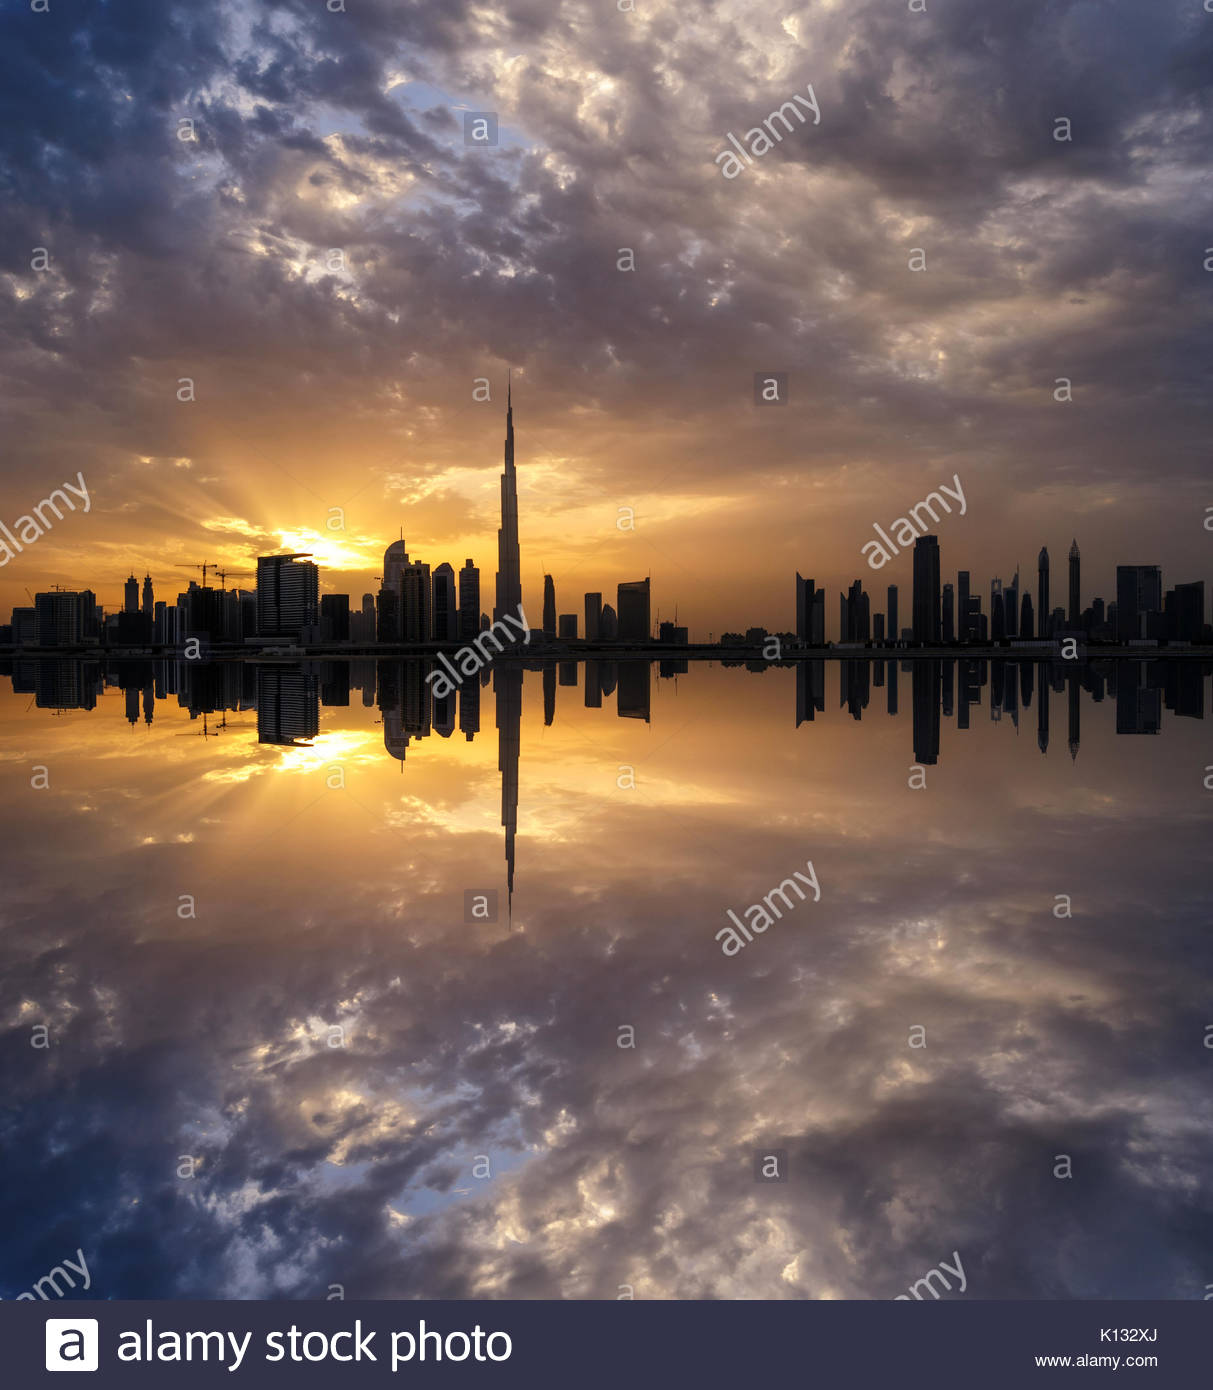 Fascinating reflection of tallest skyscrapers in Business Bay district during dramatic sunset. Downtown summer day. - Stock Image